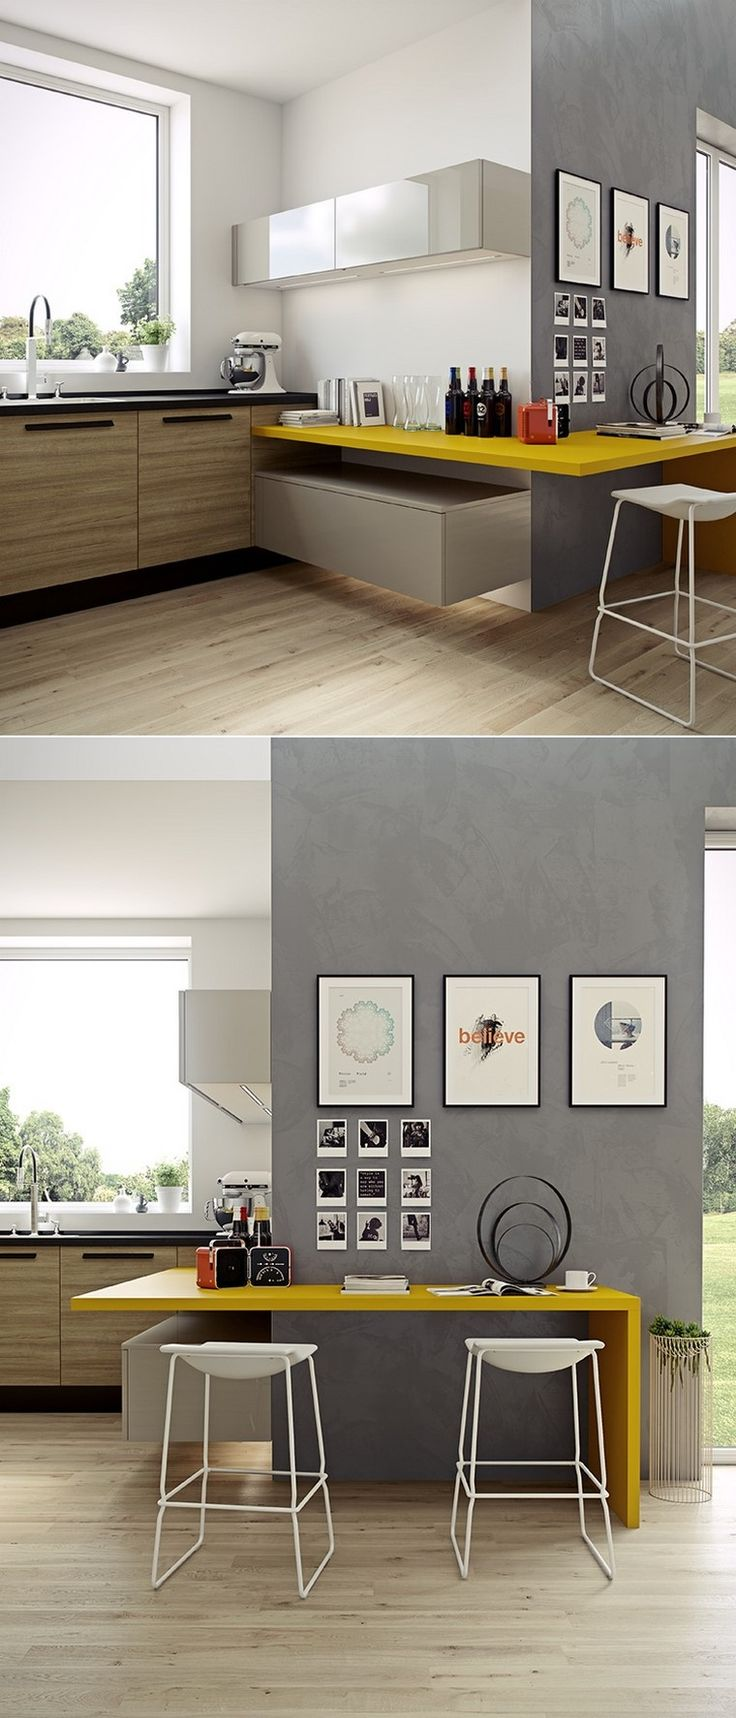 1425 best Cool Interior Projects images on Pinterest | Contemporary ...